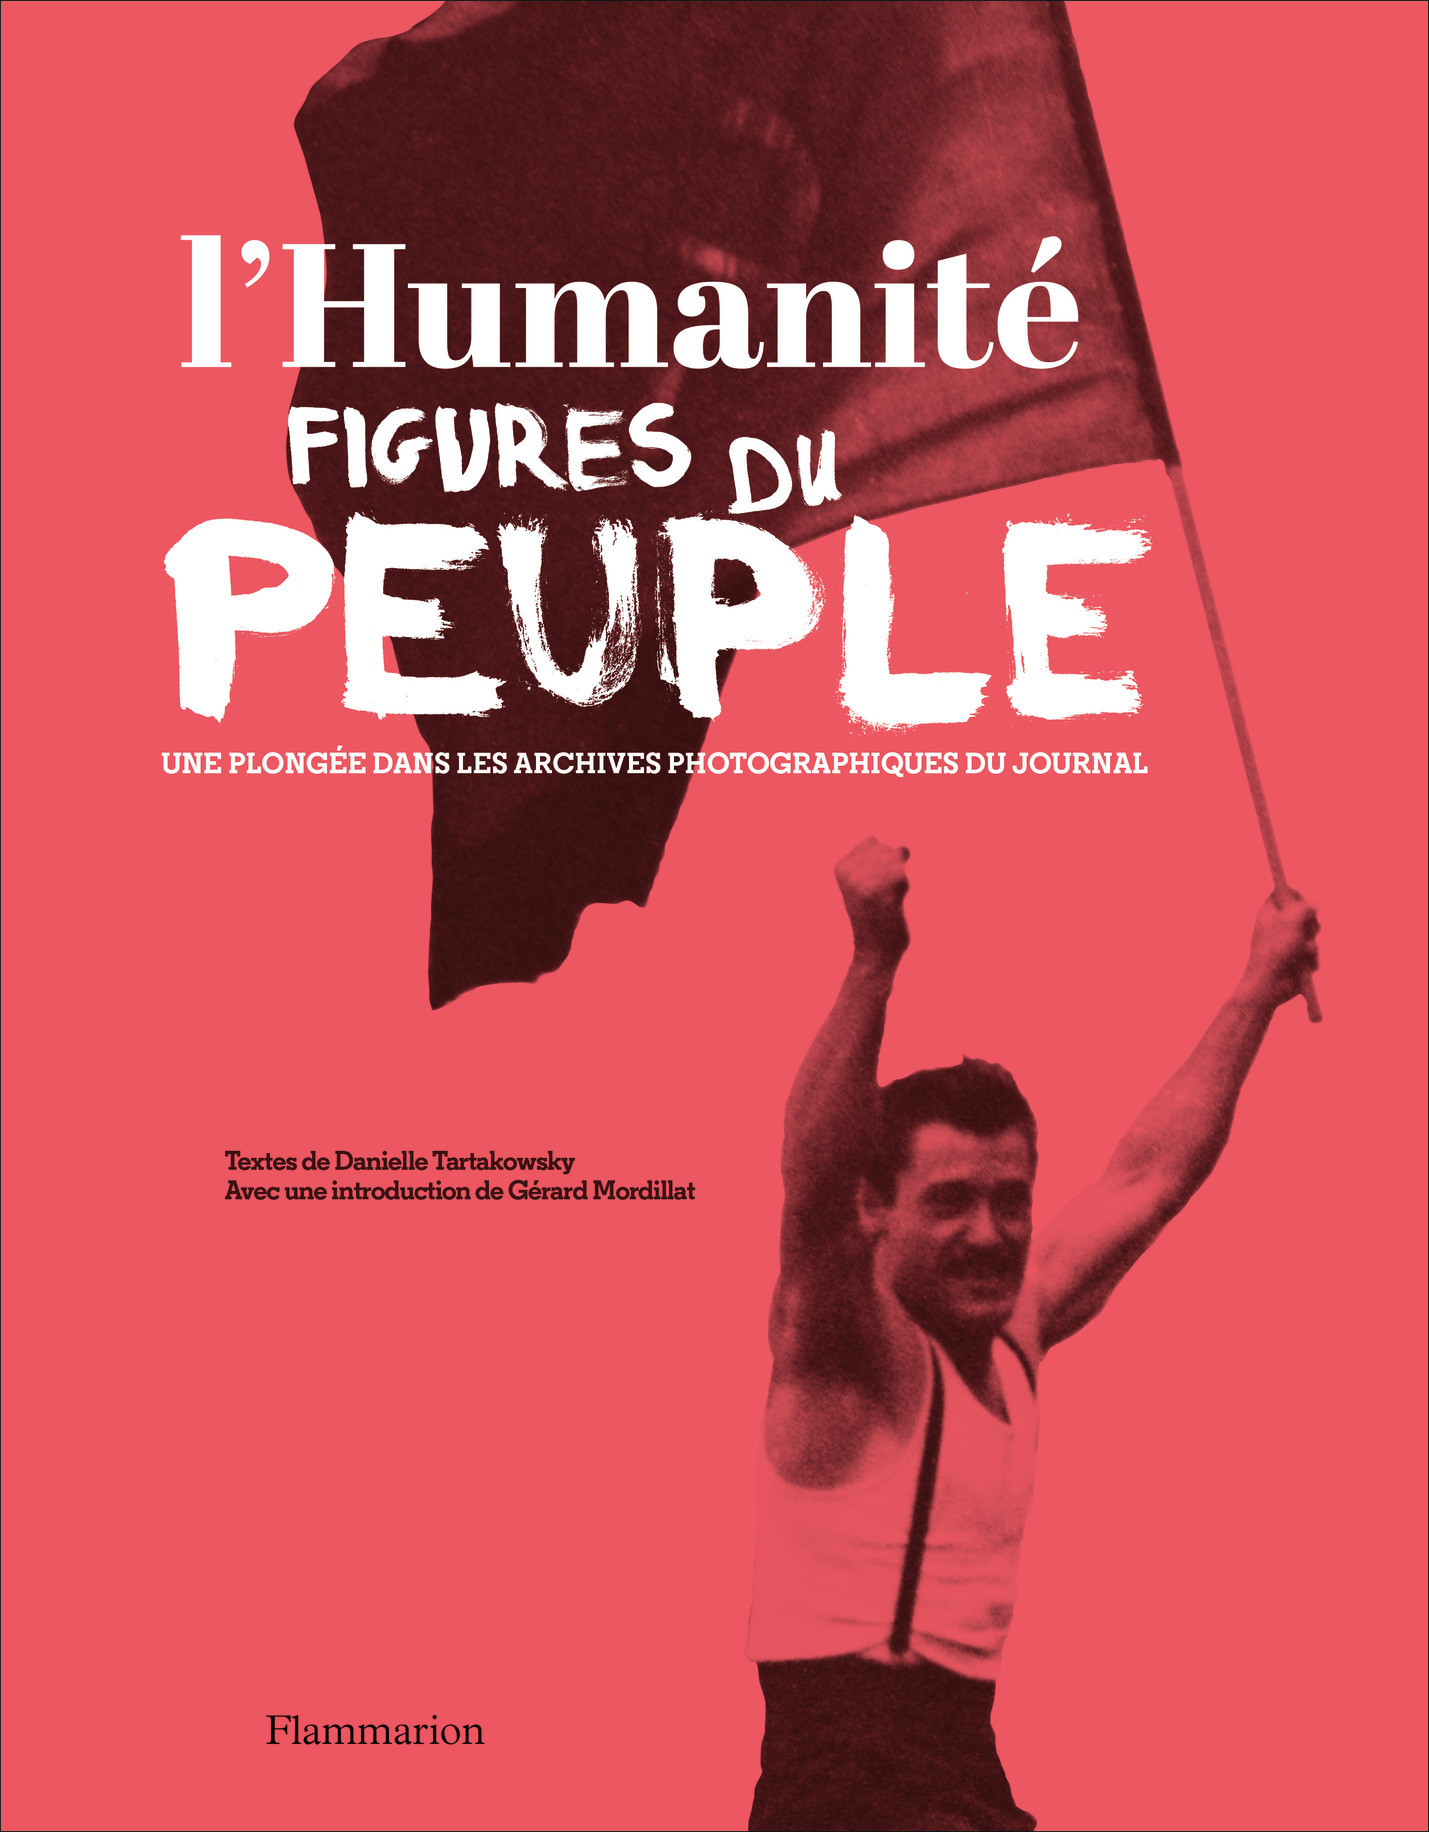 L'HUMANITE, FIGURES DU PEUPLE